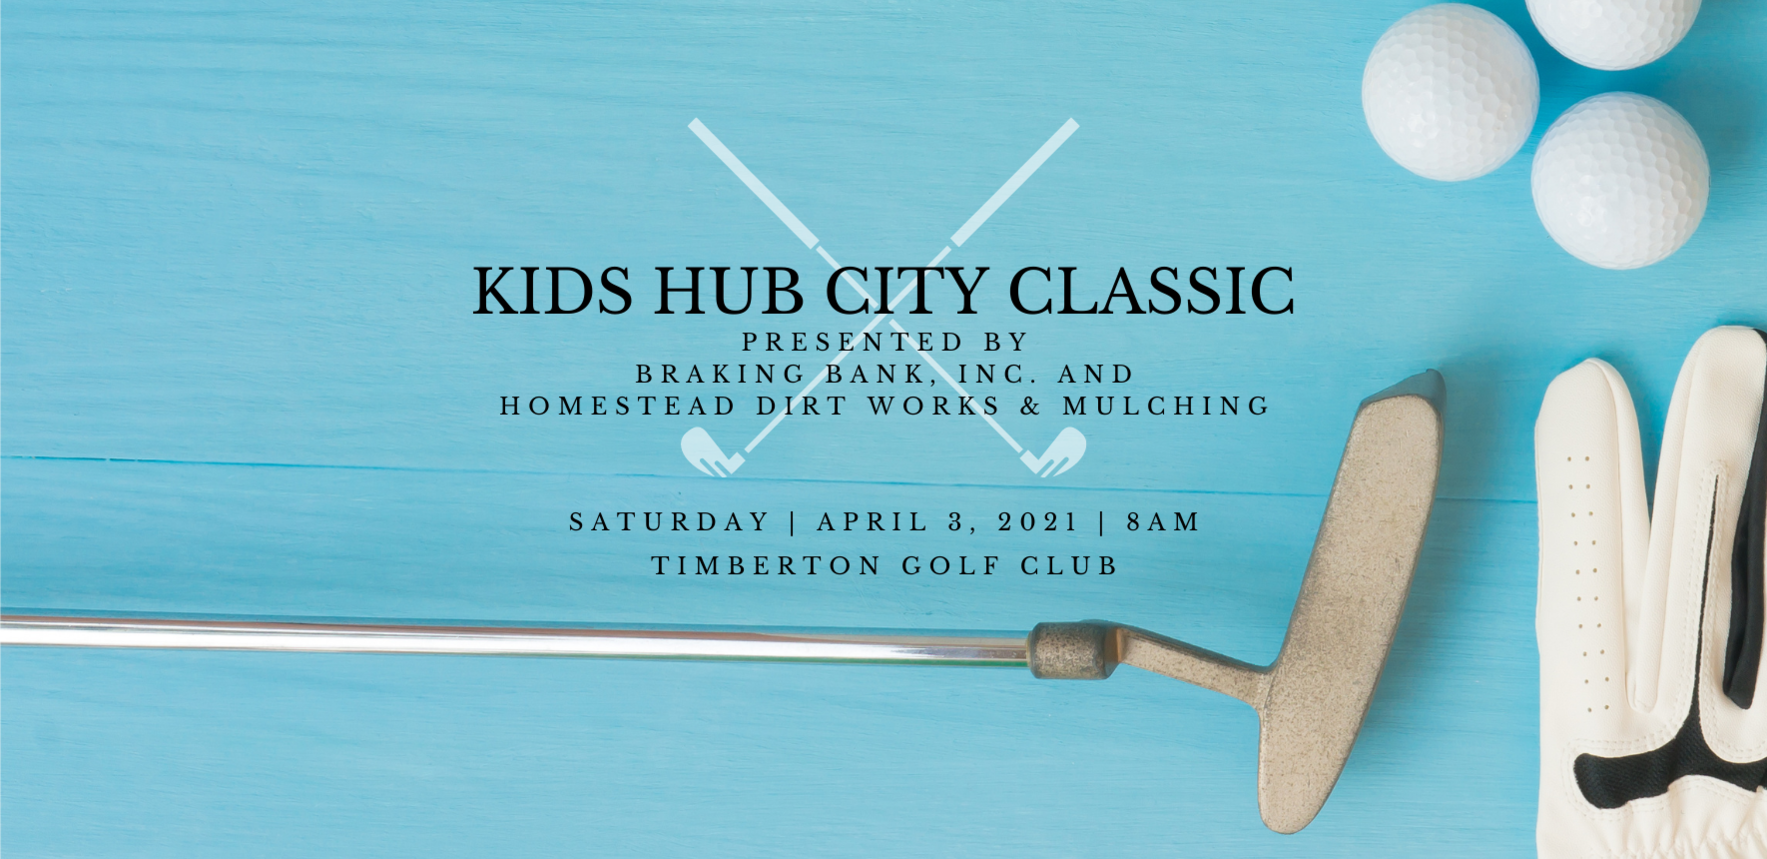 Partner with Braking Banks, Inc. and Homestead Dirt Works & Mulching to take a swing at child abuse by sponsoring the 1st Annual Kids Hub City Classic! image